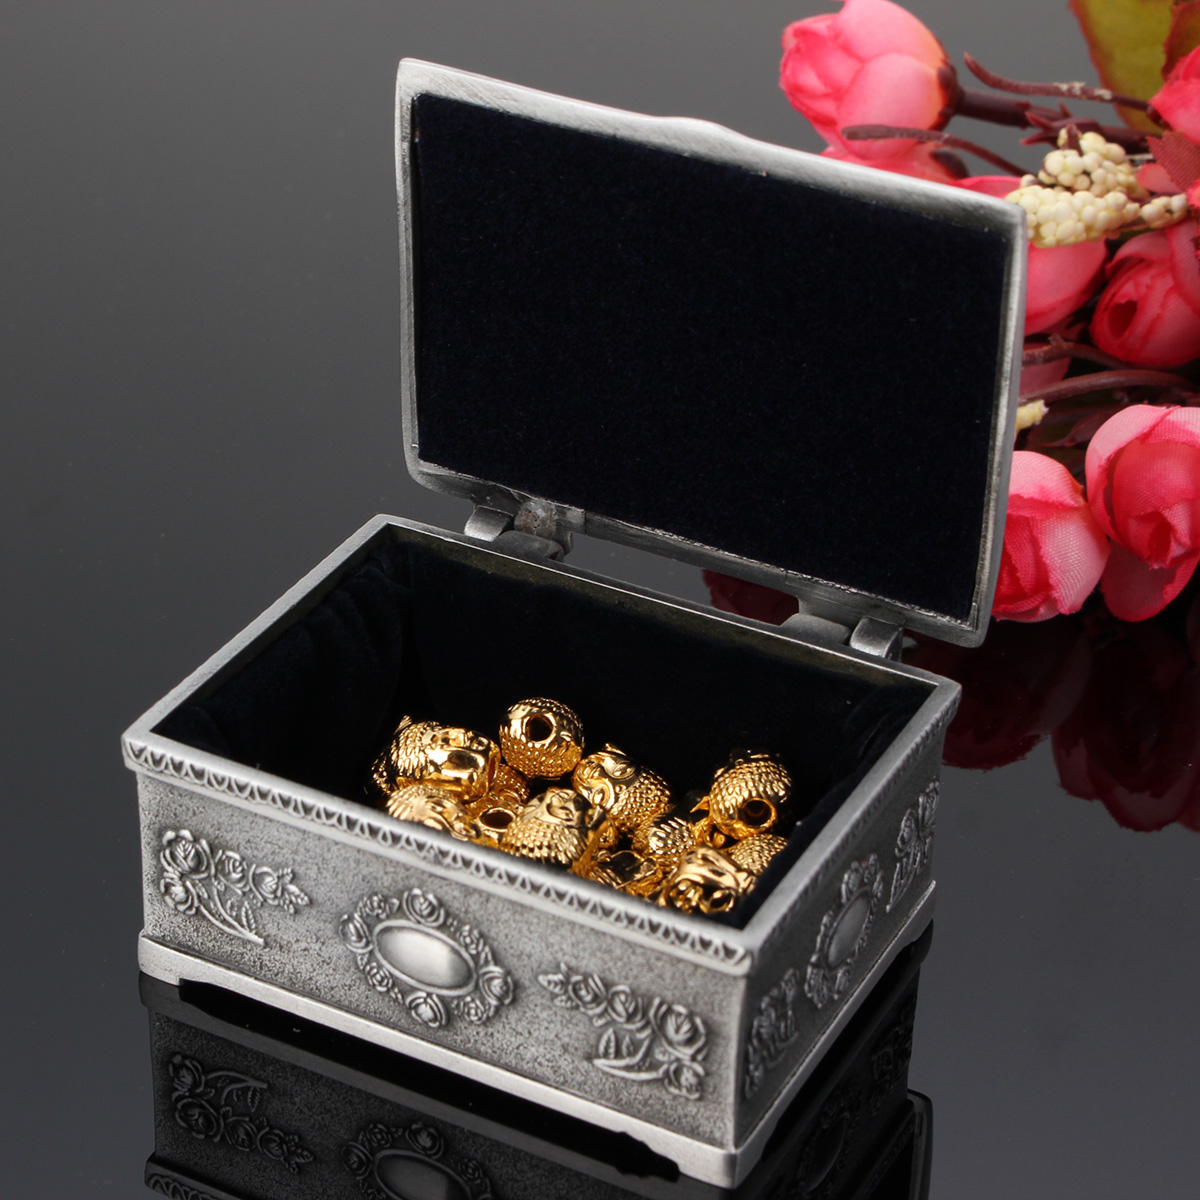 Vintage Bracelet Earrings Necklace Jewelry Gift Storage Box Case Holder